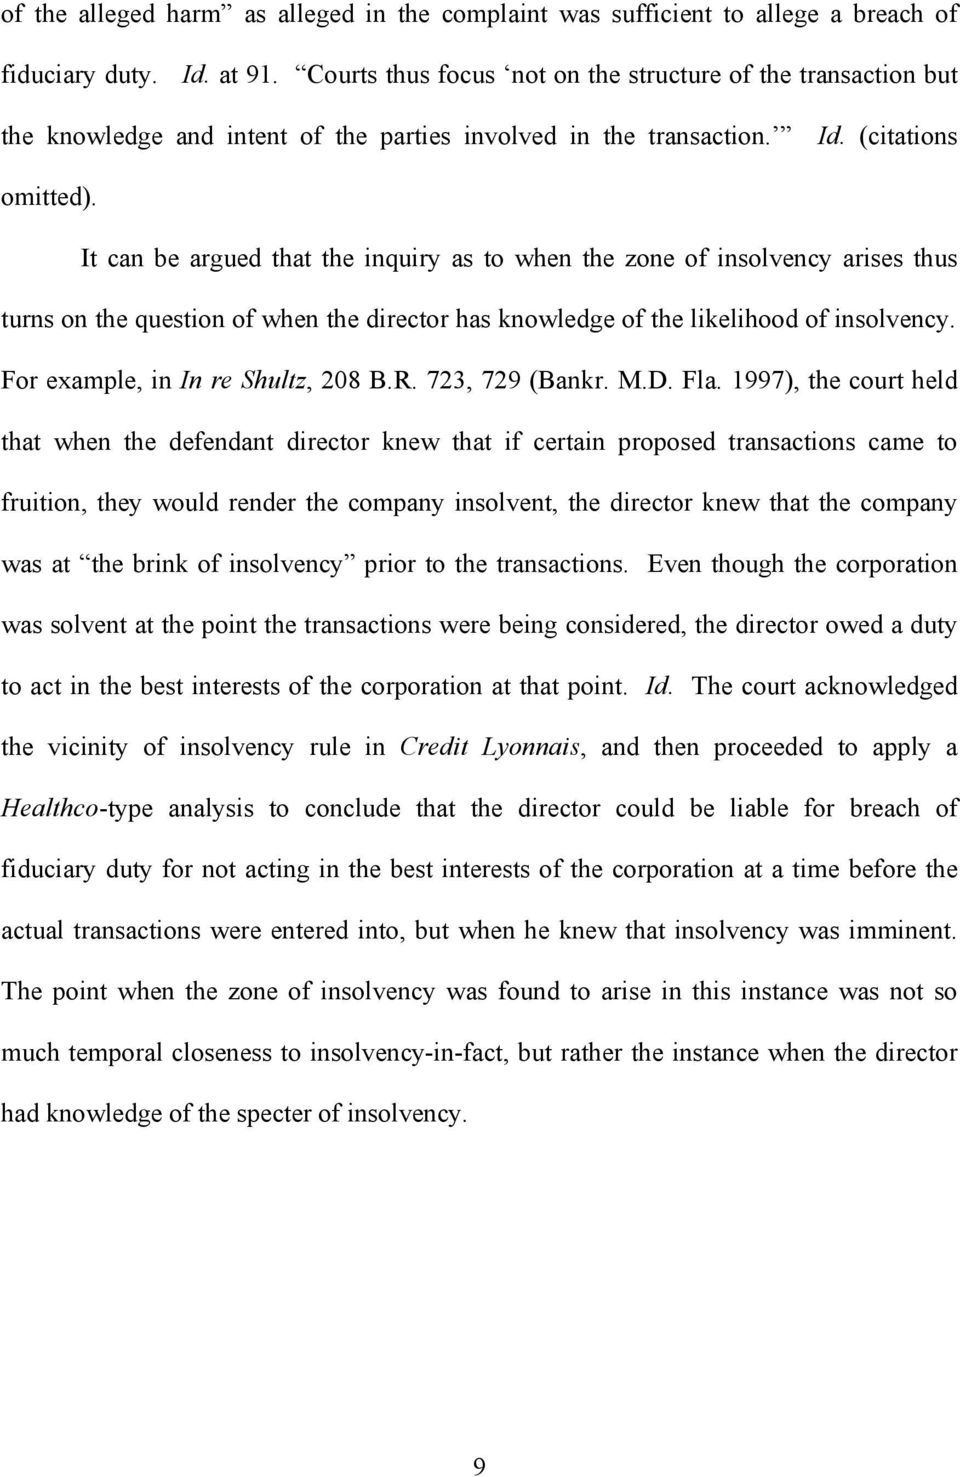 It can be argued that the inquiry as to when the zone of insolvency arises thus turns on the question of when the director has knowledge of the likelihood of insolvency.